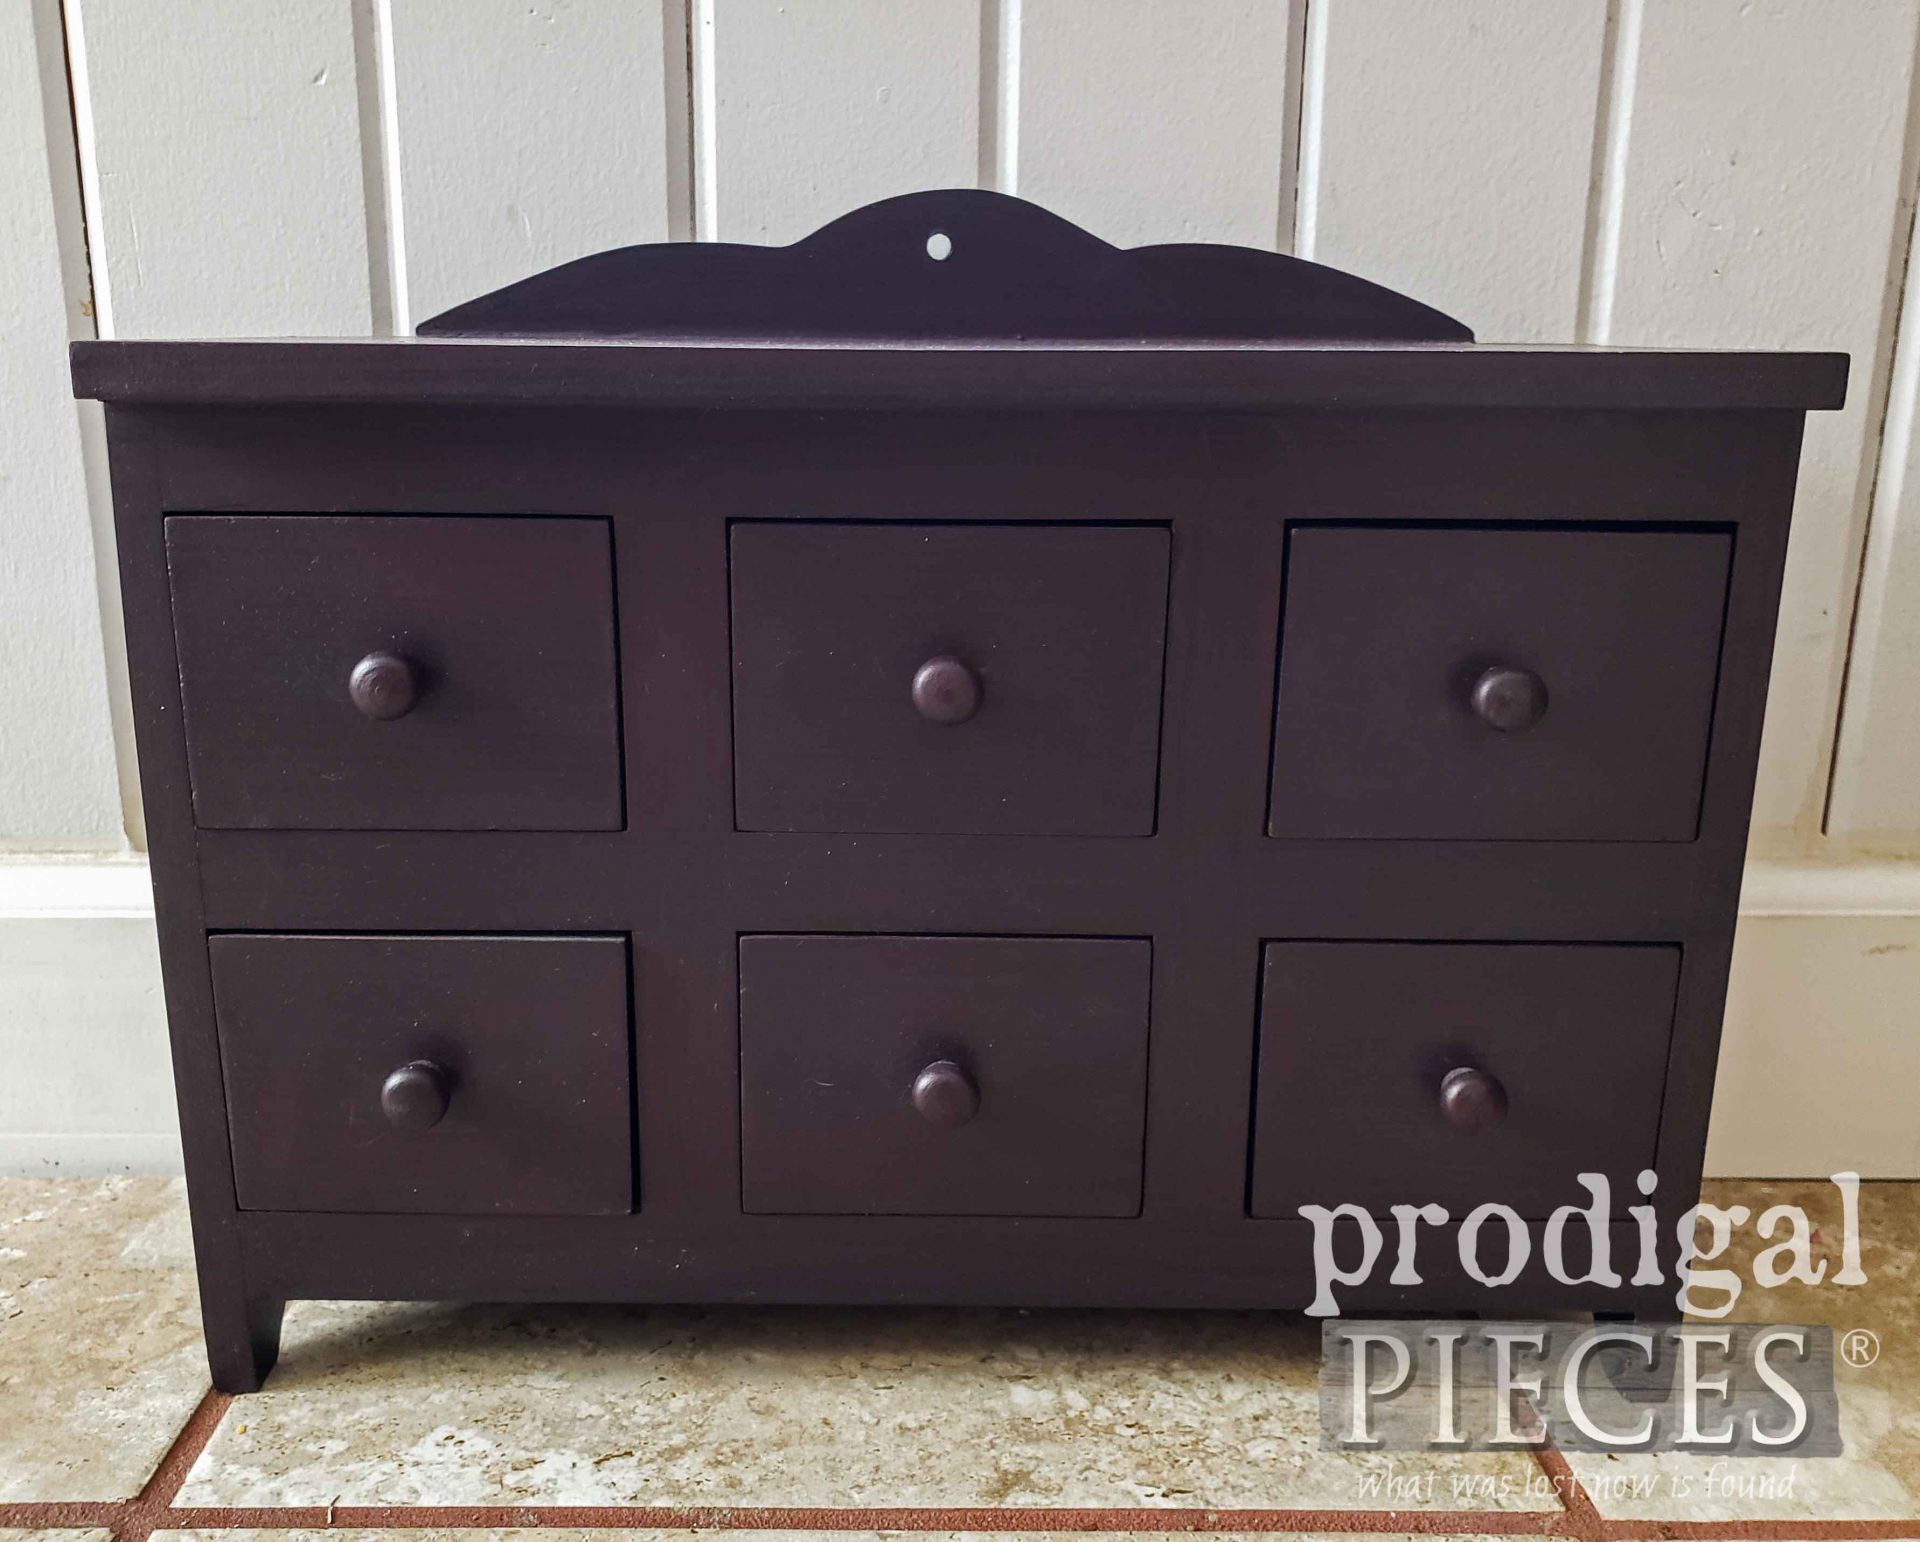 Thrifted Drawer Cubby Before Makeover by Larissa of Prodigal Pieces | prodigalpieces.com